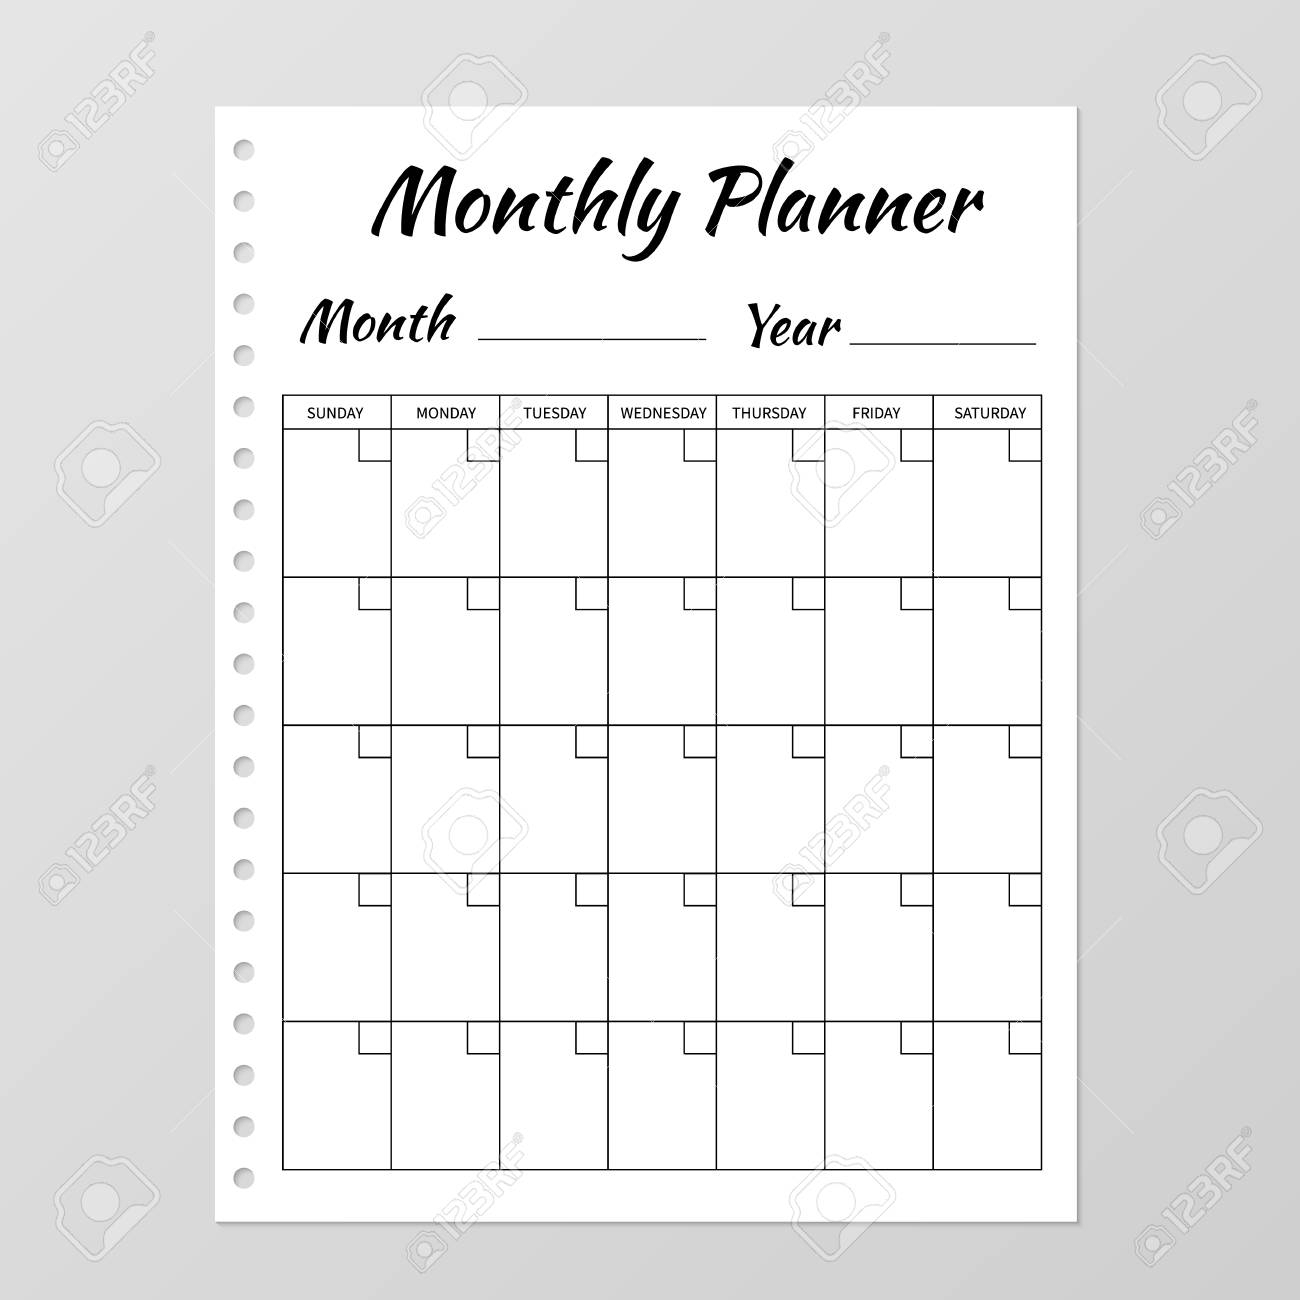 Monthly Planner Template. Blank White Notebook Page Isolated.. pertaining to Free Blank Monthly Planner Templates